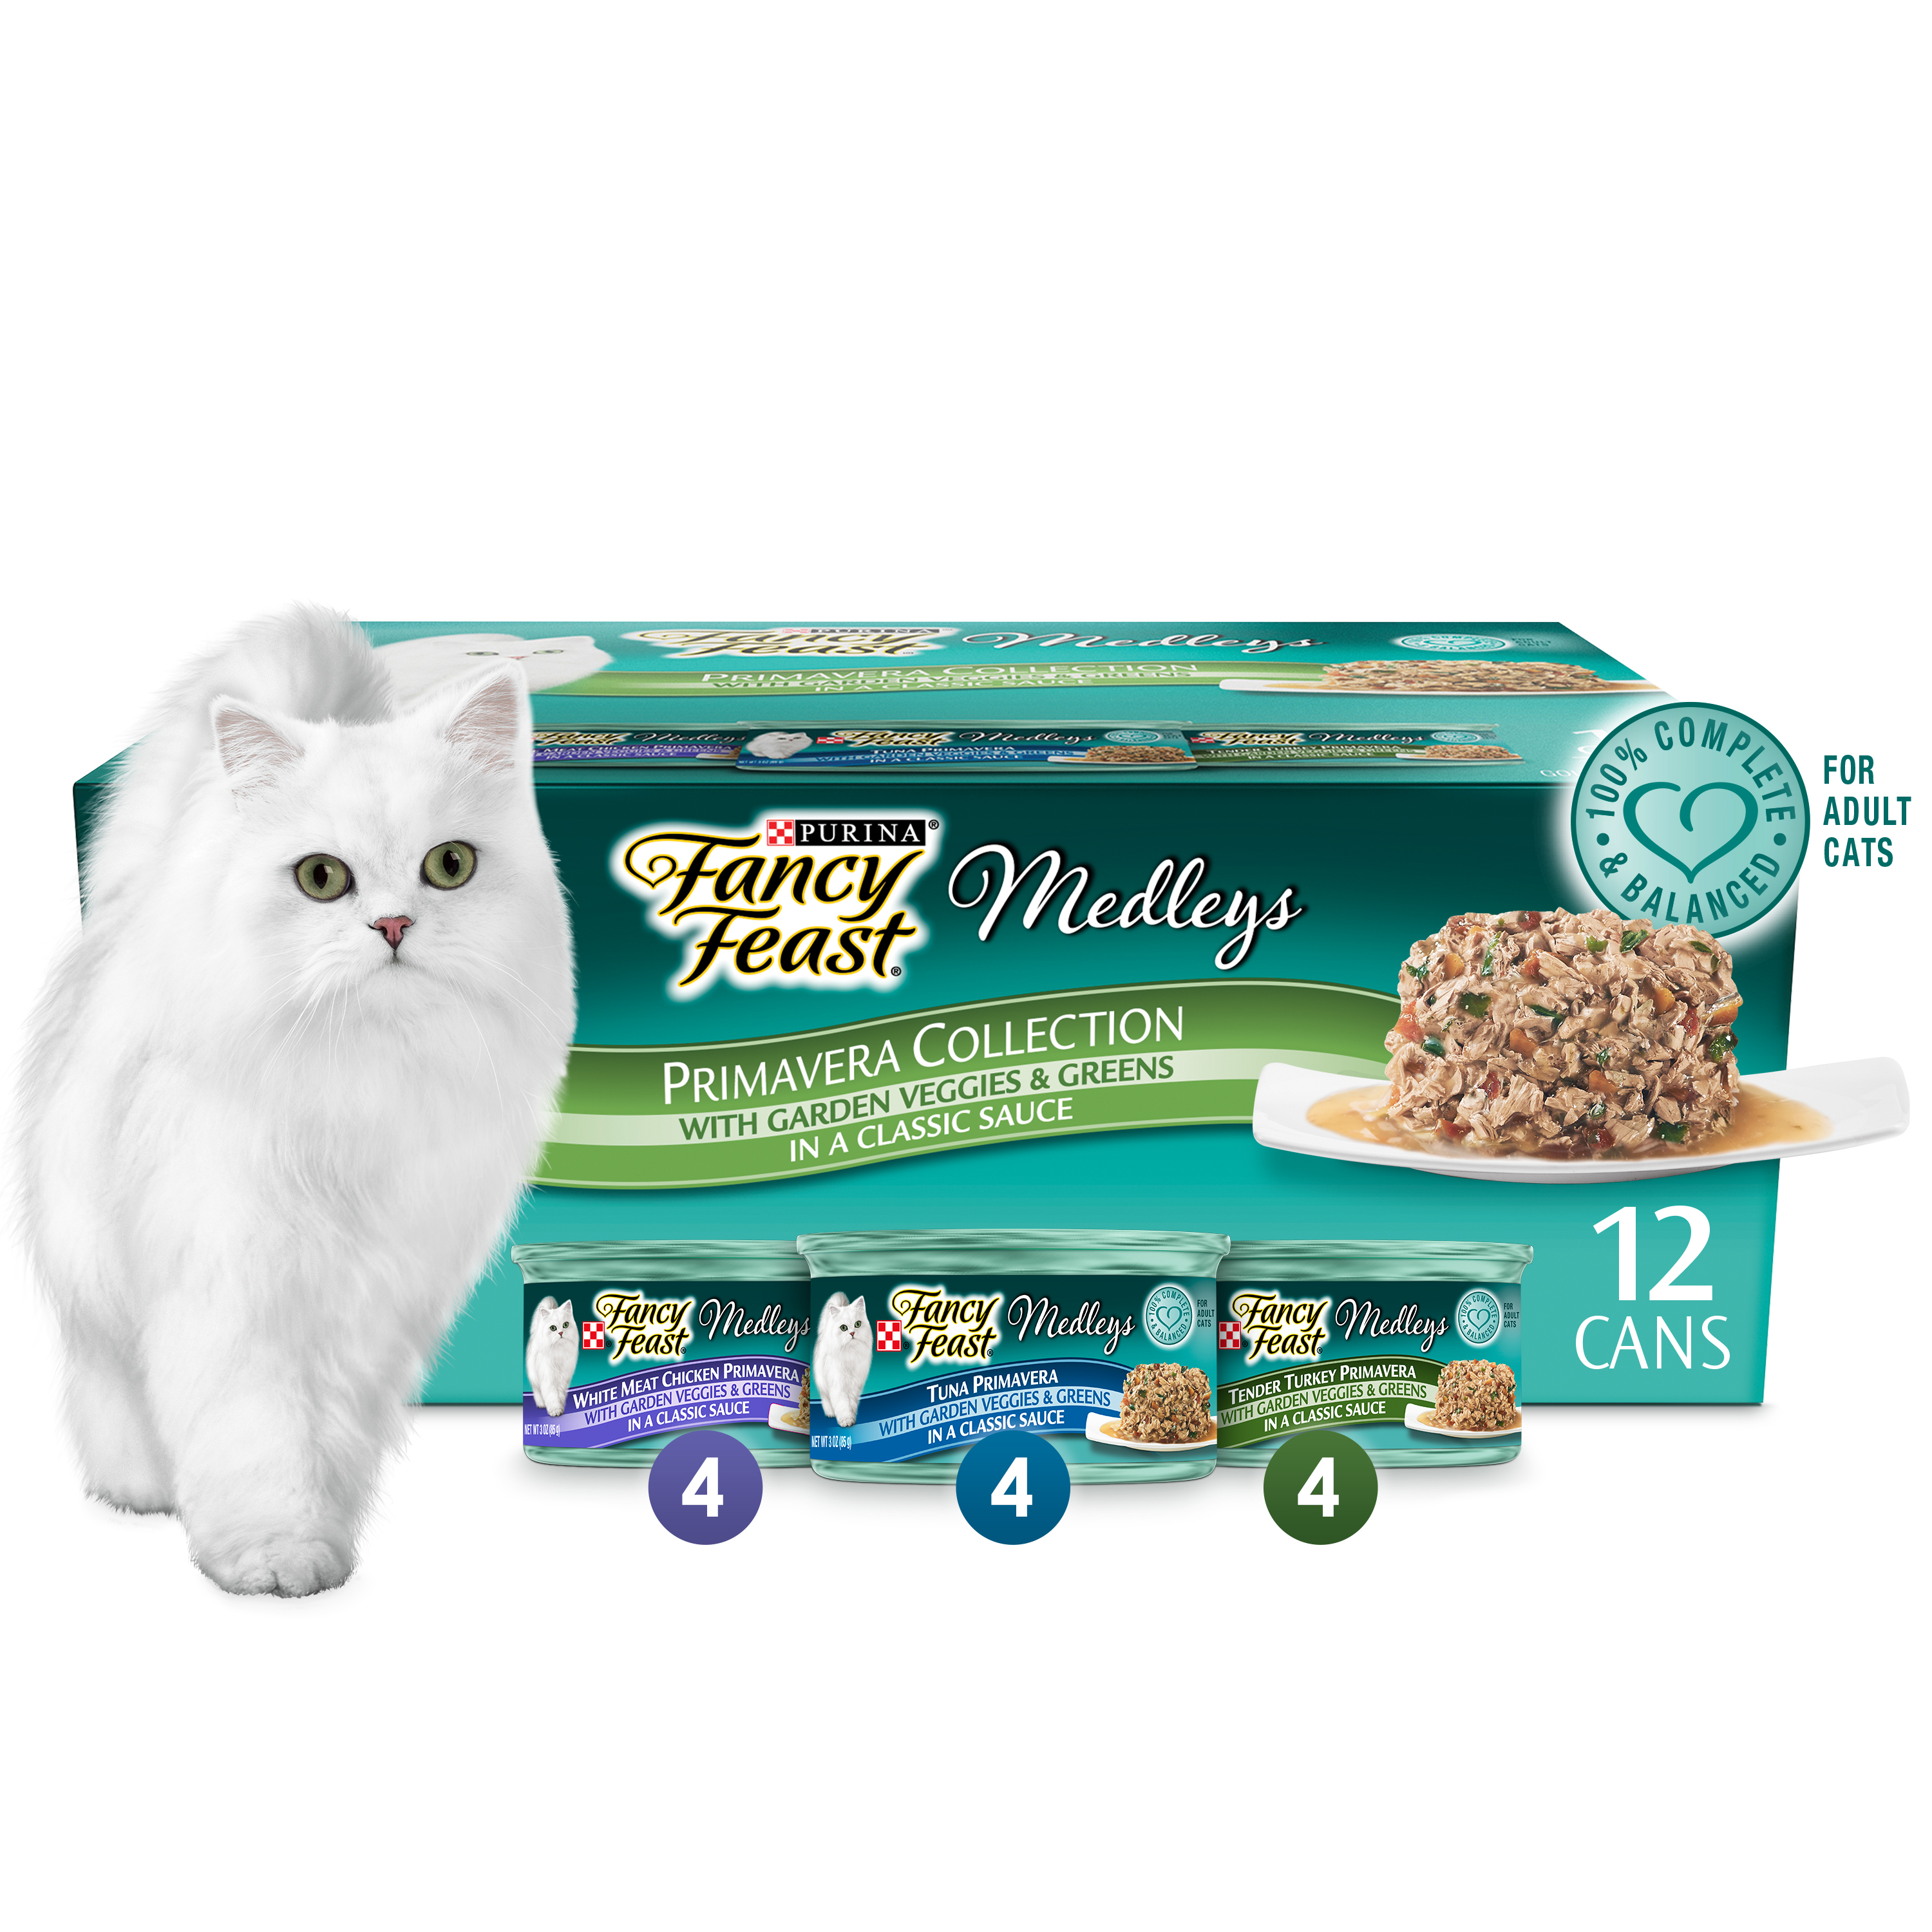 (12 Pack) Fancy Feast Gravy Wet Cat Food Variety Pack, Medleys Primavera Collection, 3 oz. Cans by Nestlé Purina PetCare Company